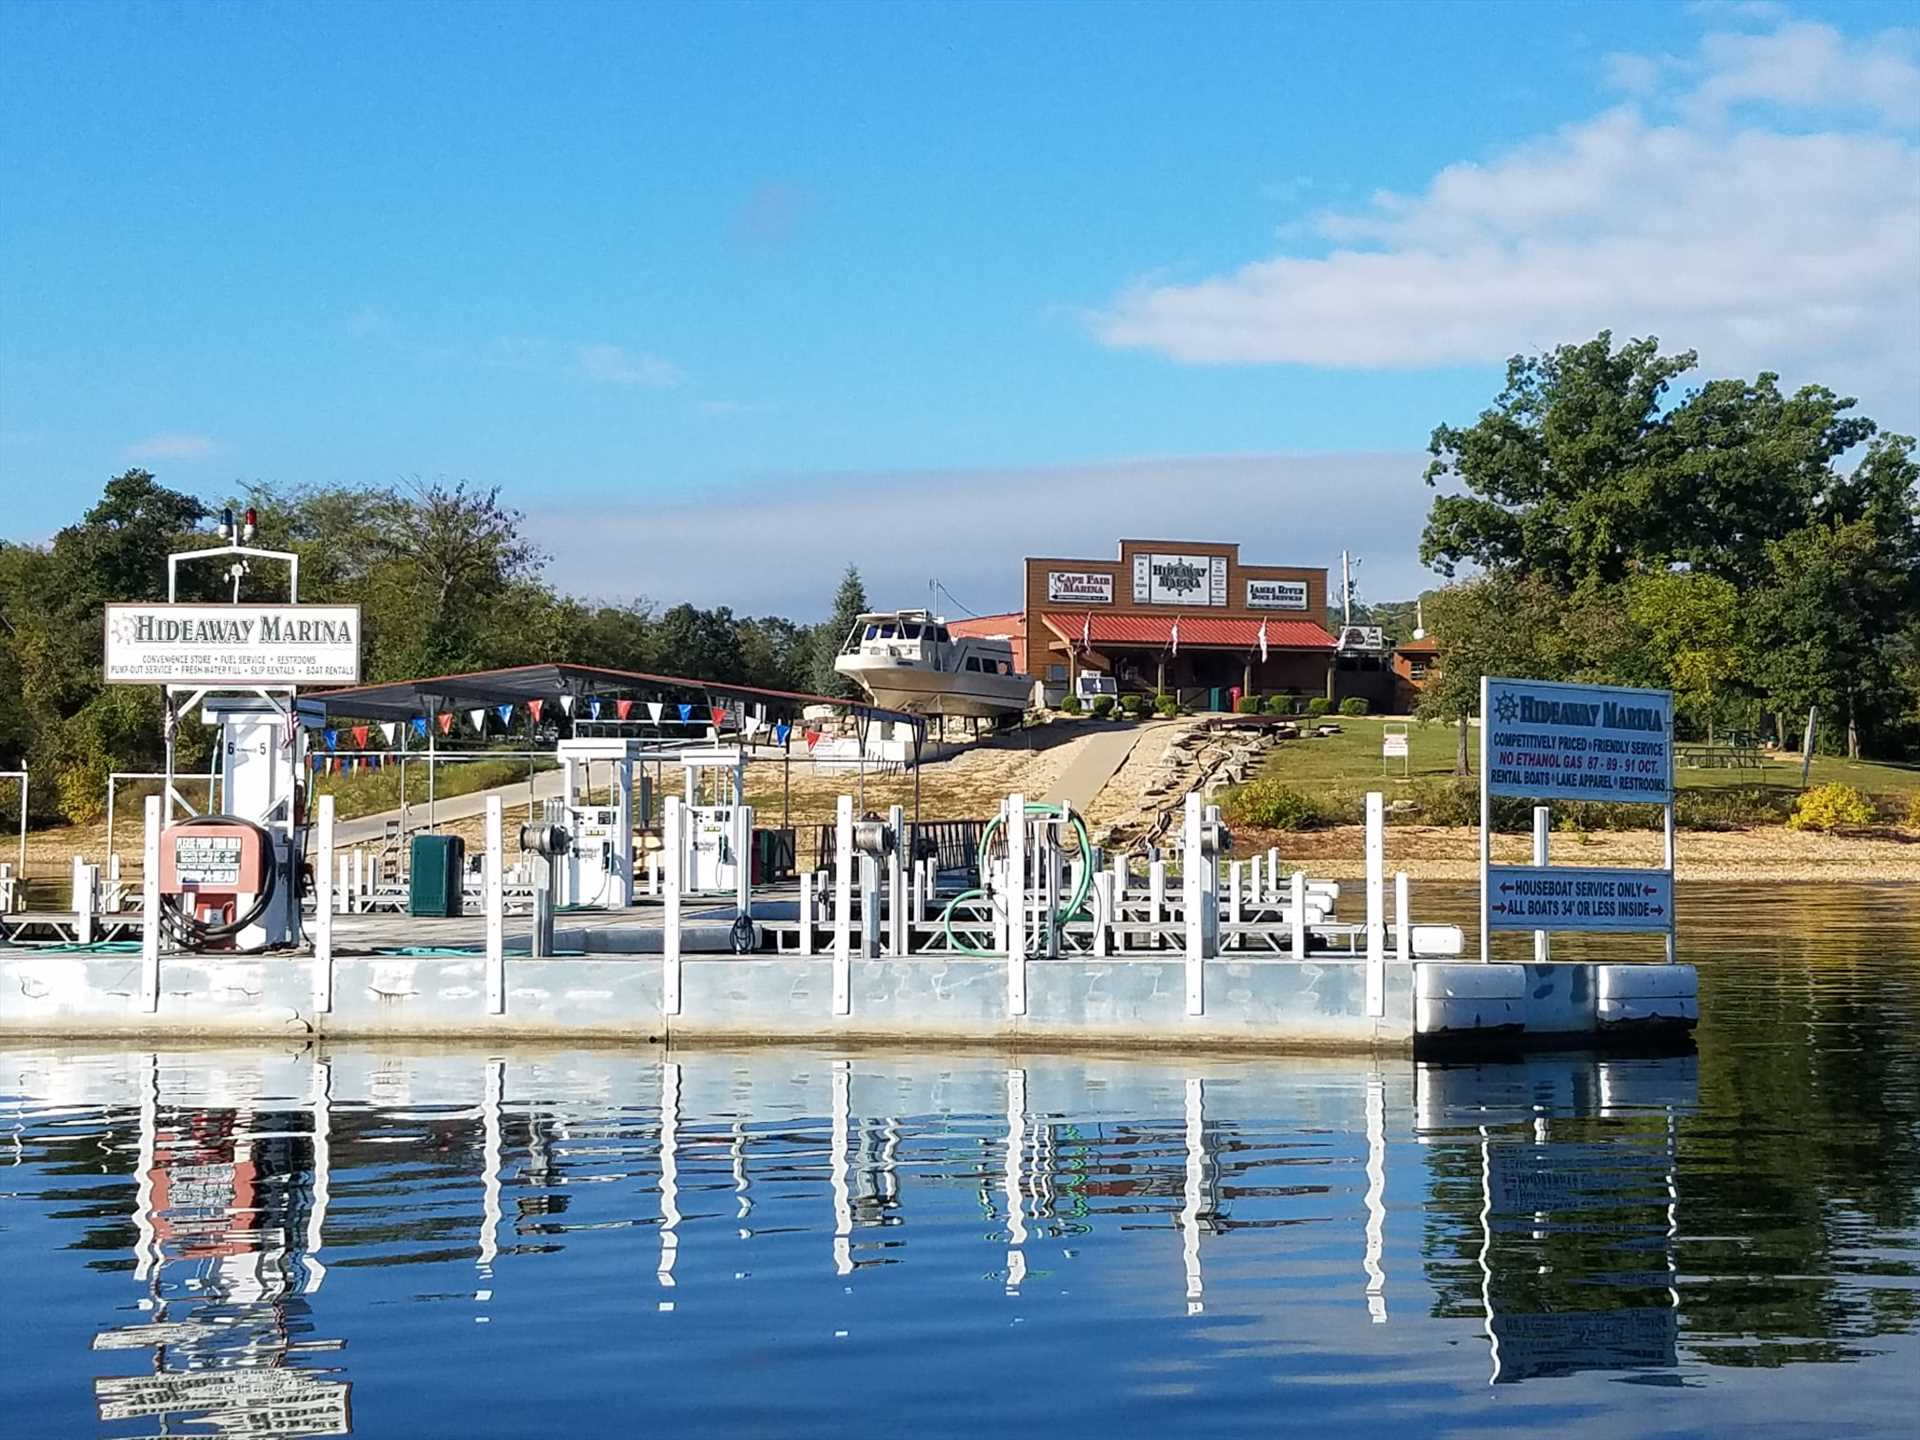 The full-service Hideaway Marina is located just a short wal